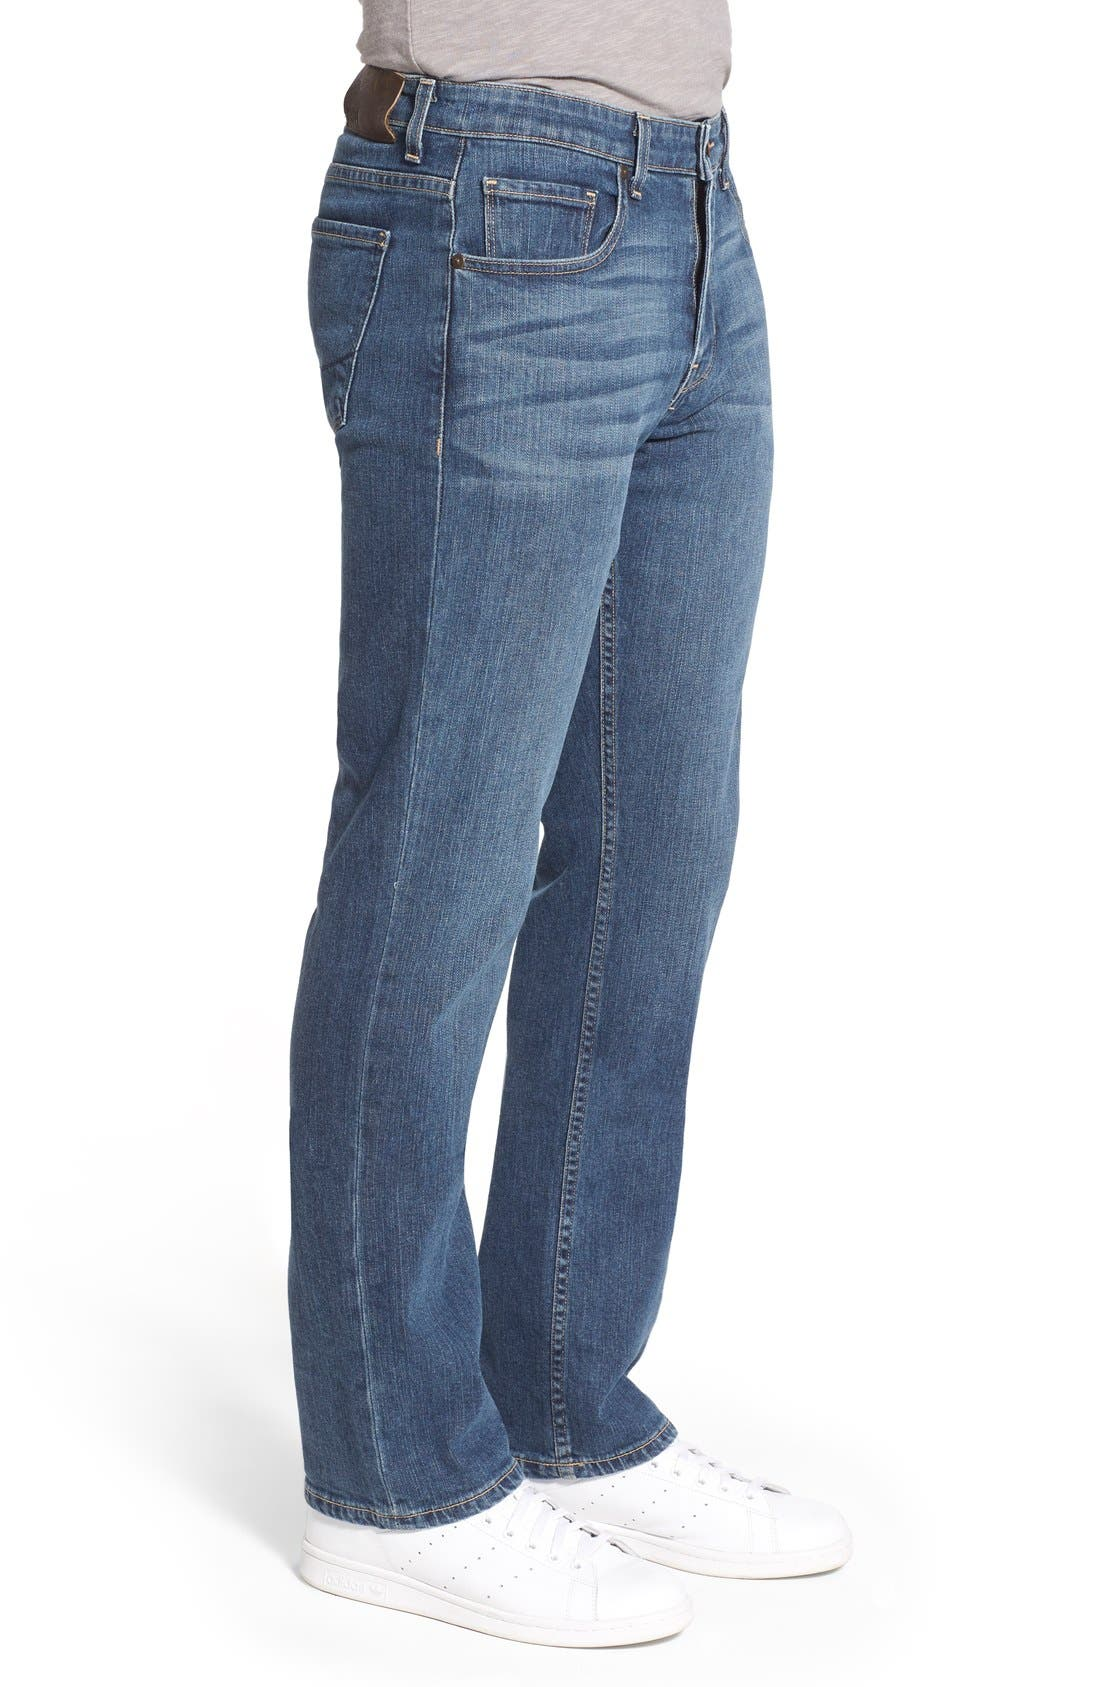 'Doheny' Relaxed Fit Jeans,                             Alternate thumbnail 5, color,                             400